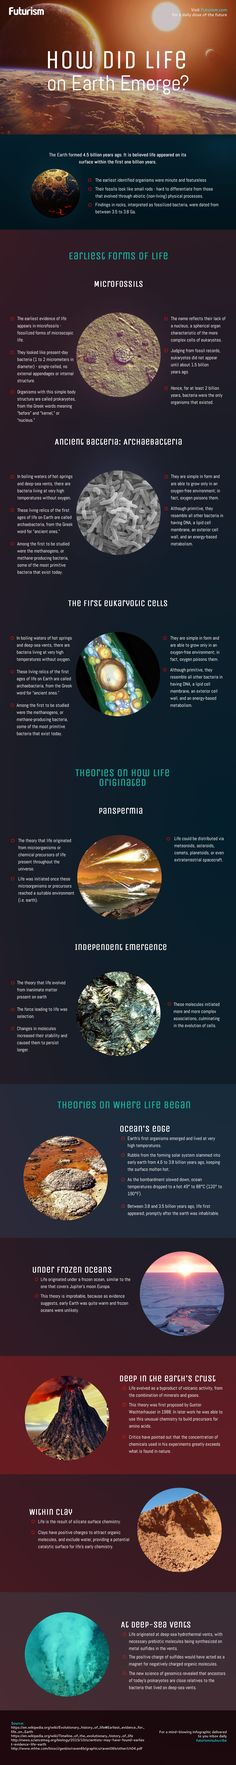 How Life Evolved on Earth (Infographic) There's a lot that we don't know about the origins and evolution of life on our planet. But there's a lot that we do know. Weird Science, Science Facts, Life Science, Earth Science, Science And Nature, Science Education, Science And Technology, Nasa, Space Story